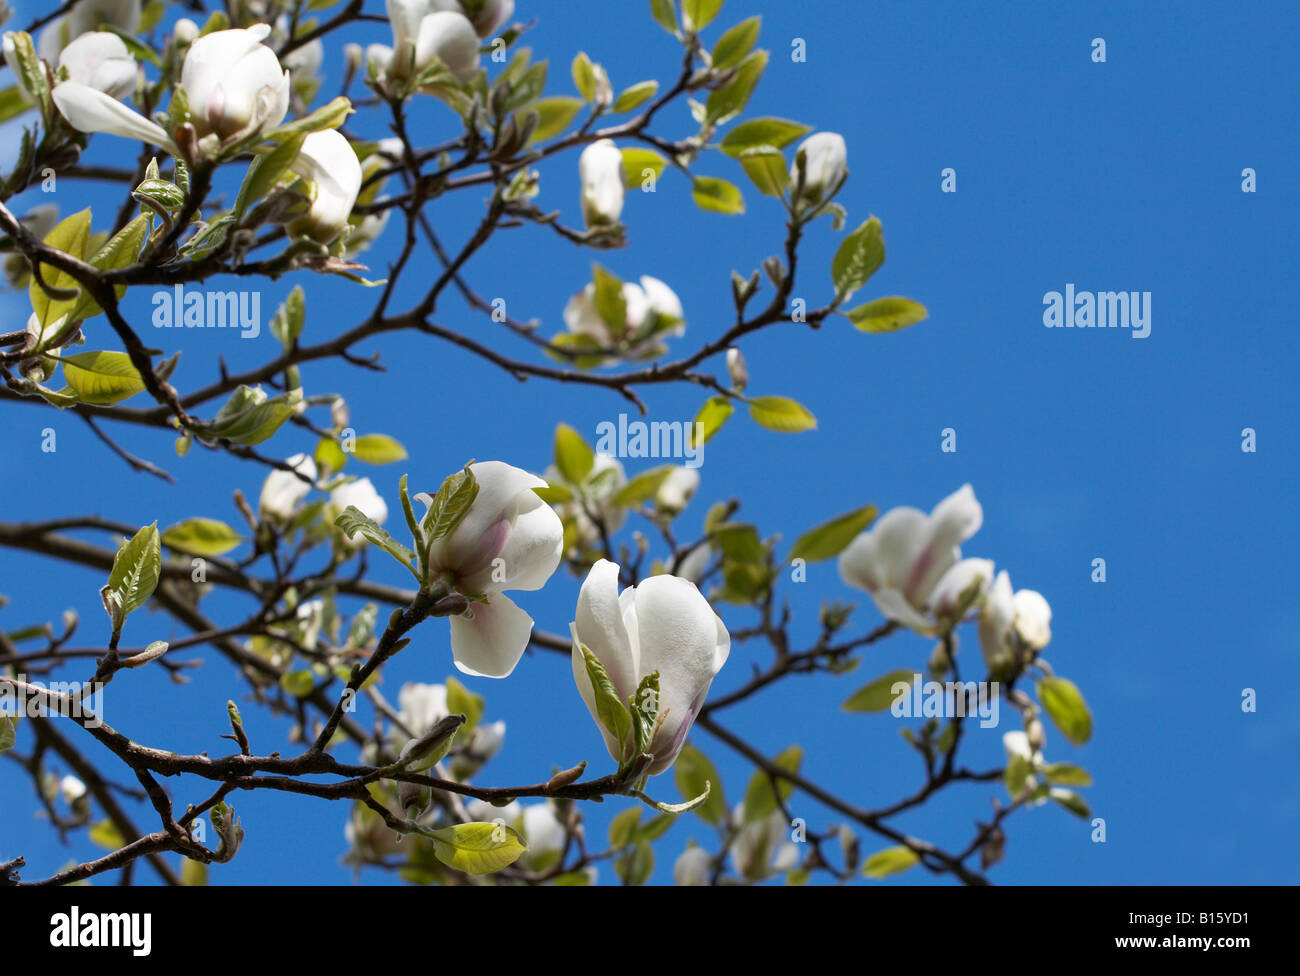 White flowers of magnolia tree with backdrop of blue sky stock photo white flowers of magnolia tree with backdrop of blue sky mightylinksfo Images